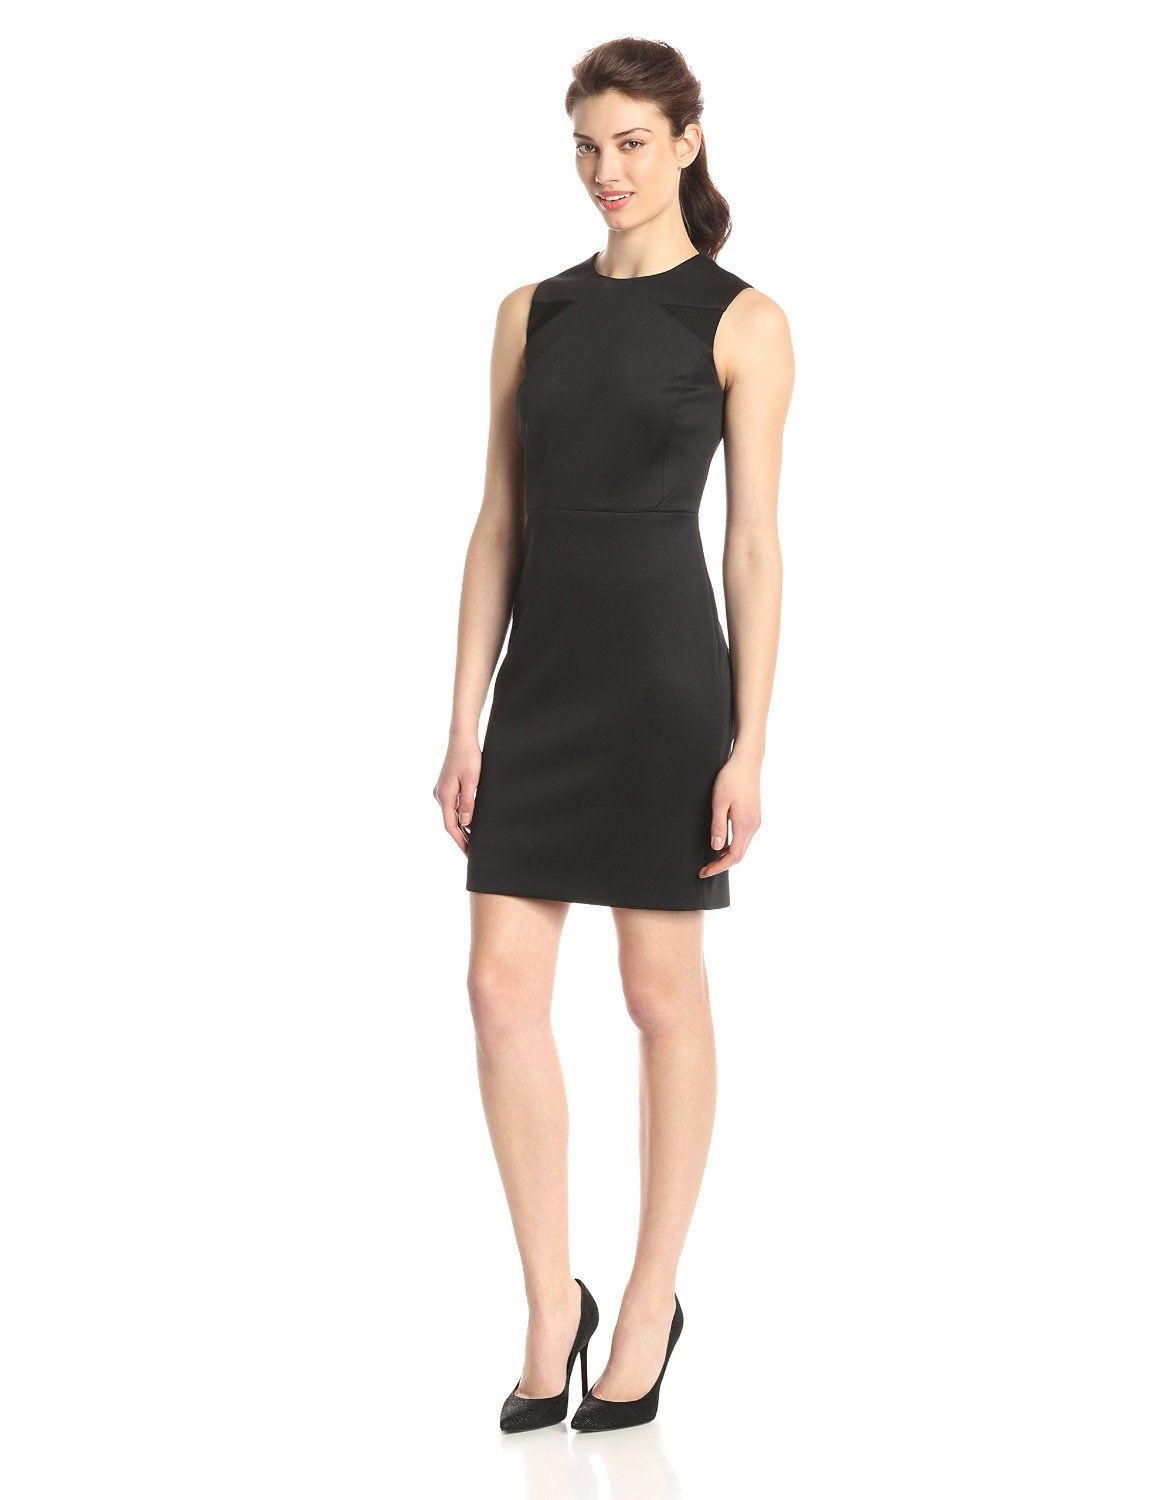 Sleeveless Dress With Mesh Insets By Vince Camuto Dresses Sleeveless Dress Dresses For Work [ 1500 x 1154 Pixel ]